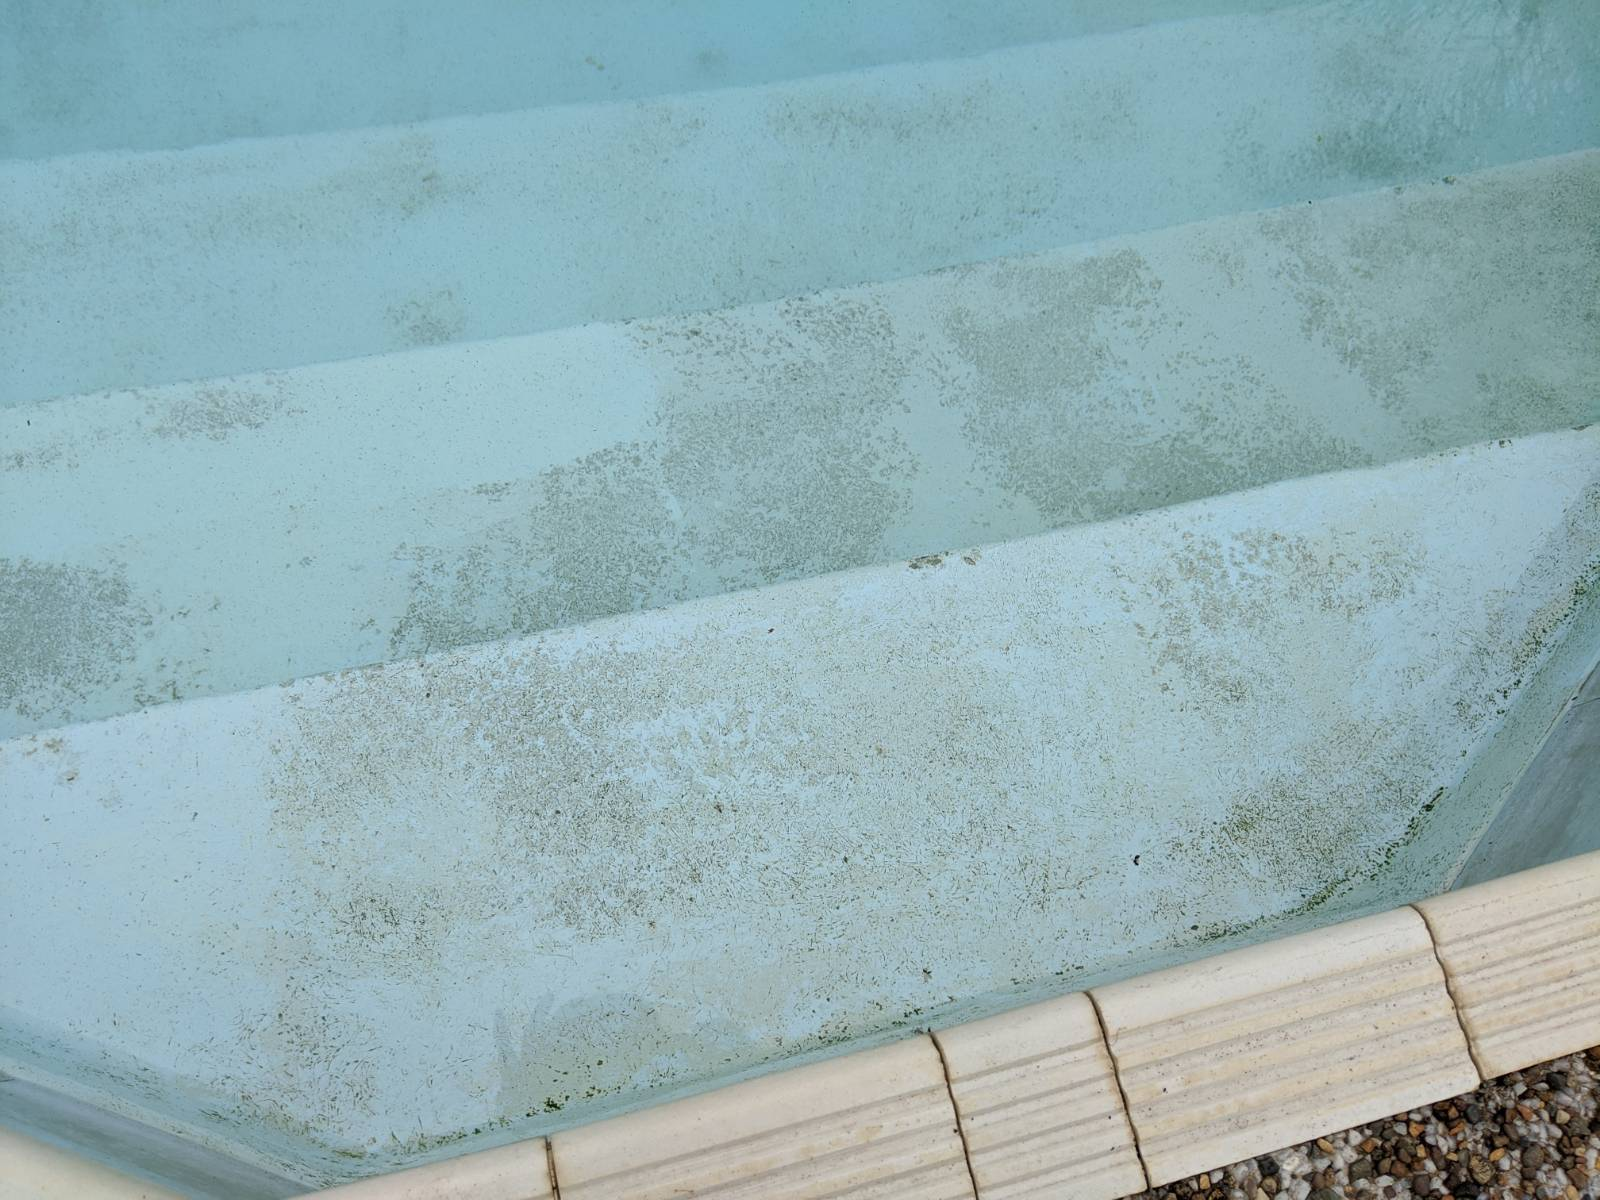 Refinishing / cleaning of surface of pool